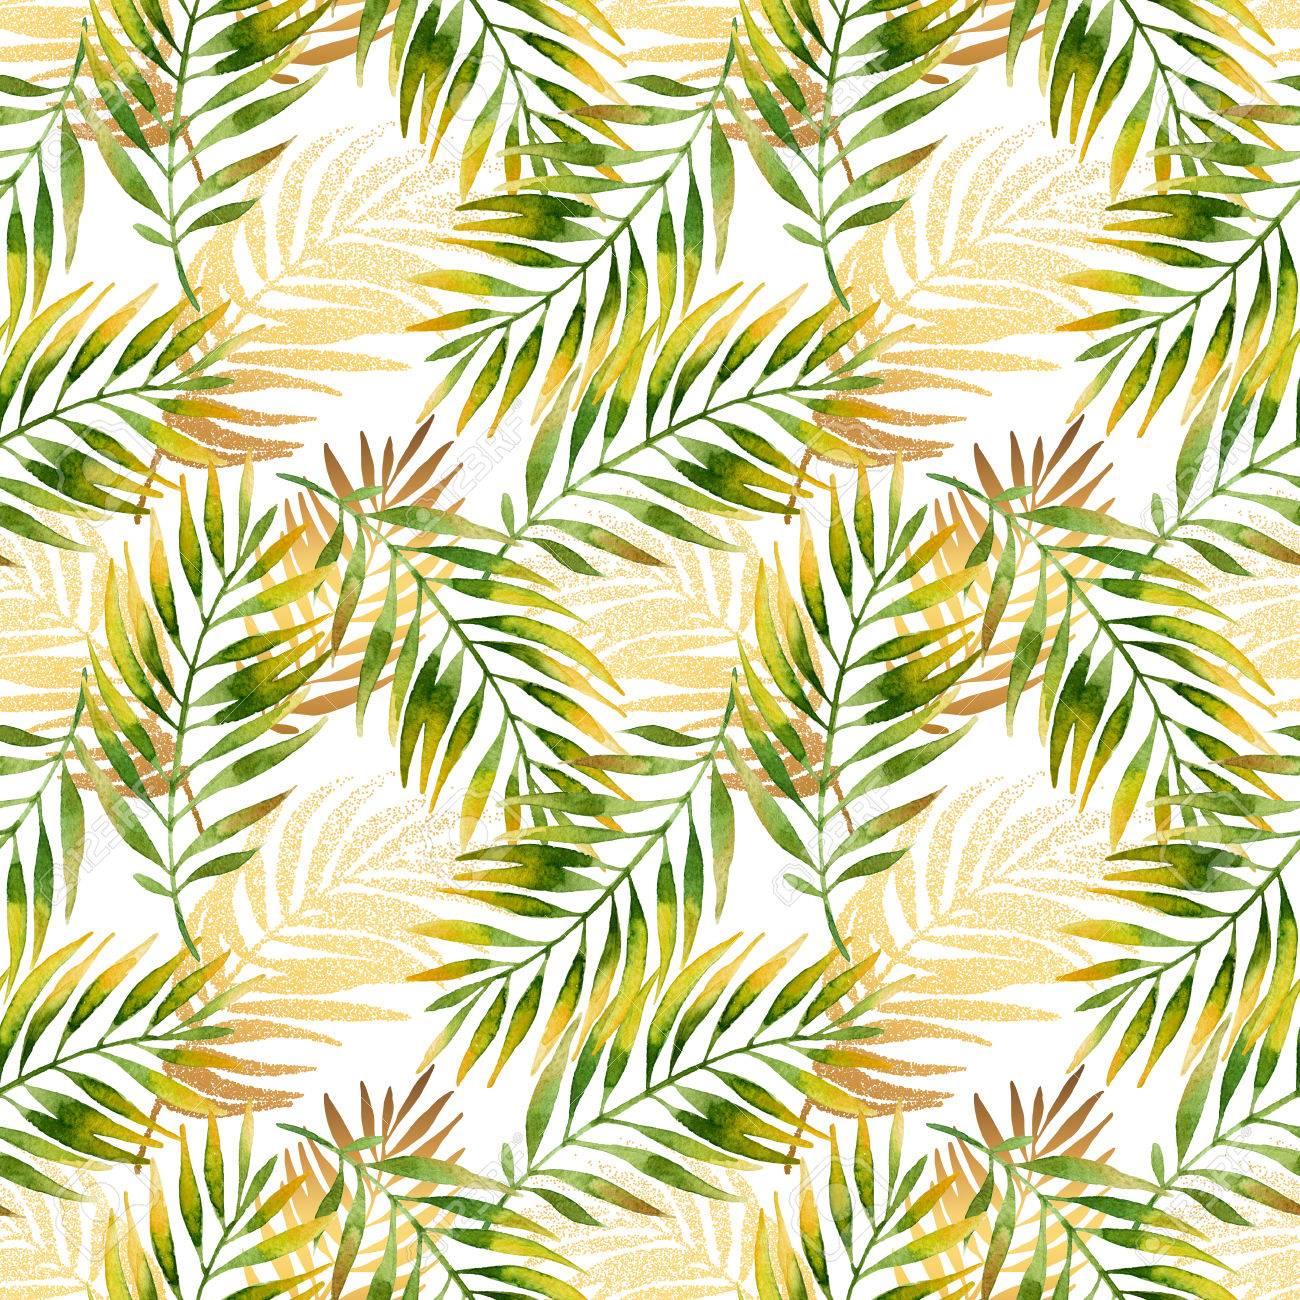 Watercolor Tropical Leaves Seamless Pattern Watercolour And Stock Photo Picture And Royalty Free Image Image 85361307 2020 popular 1 trends in home & garden, home improvement with tropical leaf painting home and 1. watercolor tropical leaves seamless pattern watercolour and